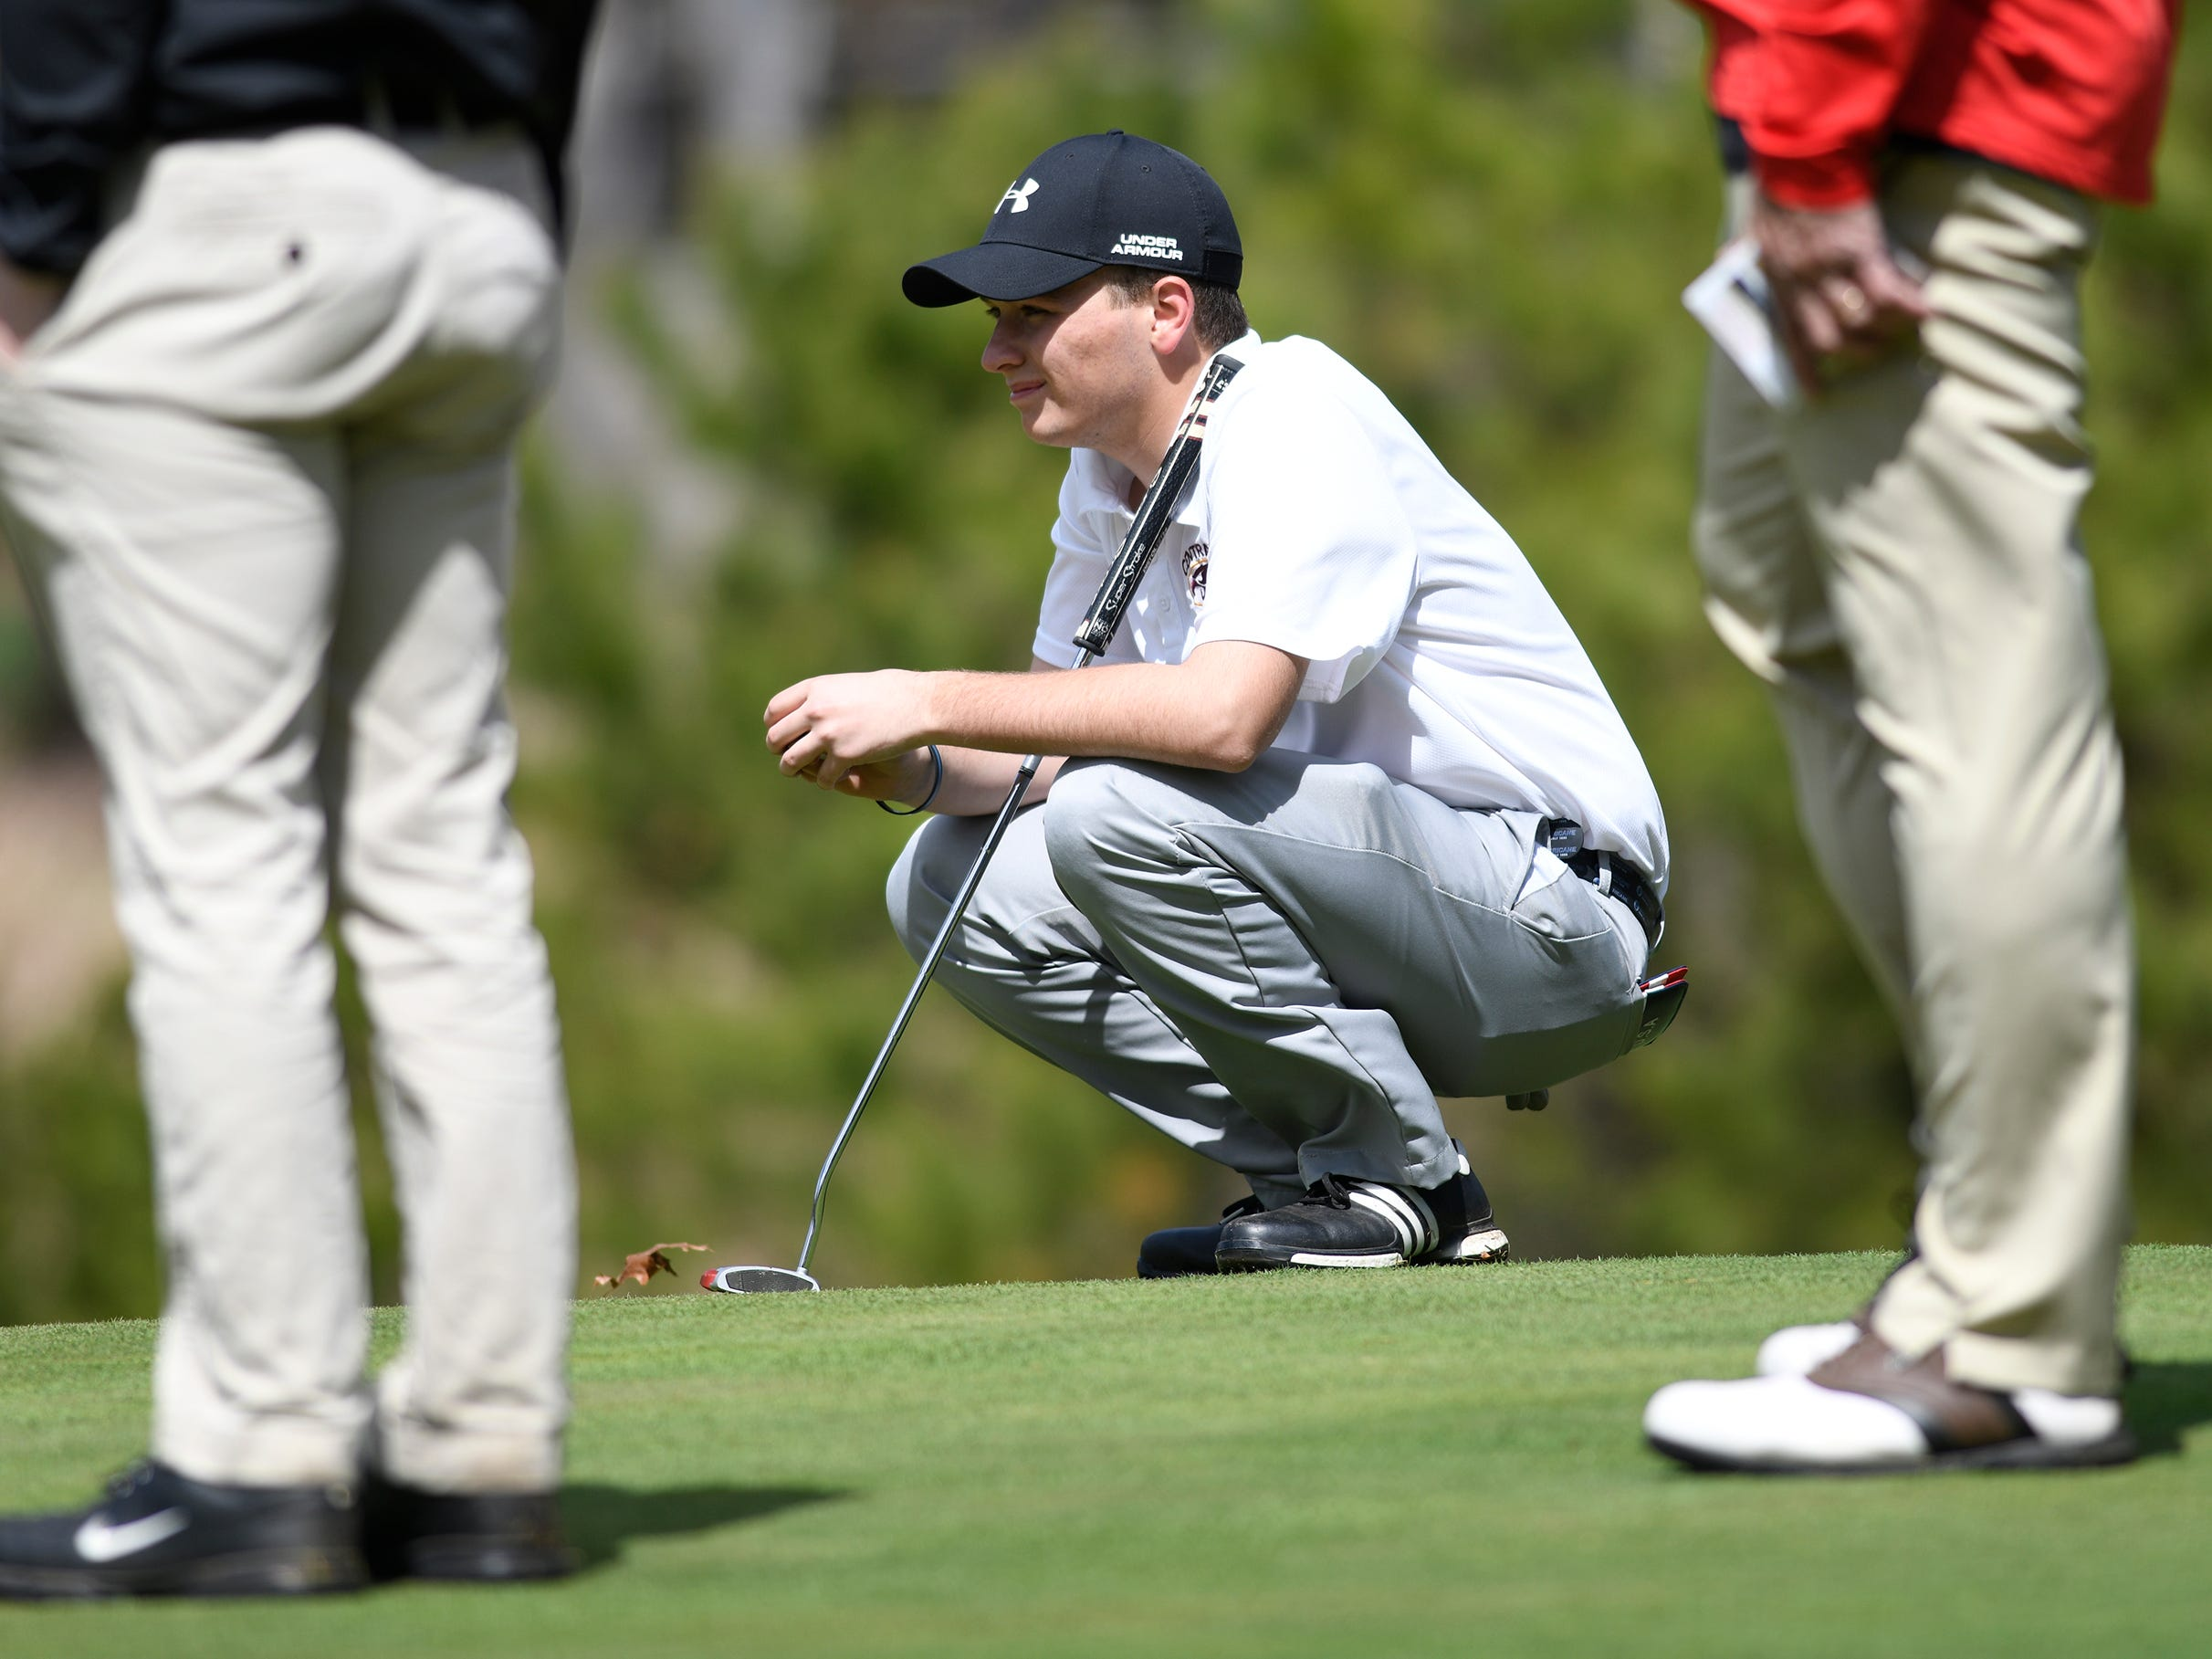 Lenny Lenahan of Central Regional High School competes at the Ocean County Tournament on April 15, 2019,  at Sea Oaks in Little Egg Harbor. Toms River North's Connor Bekefi emerged as the individual champion with a 3-over-par 75, four shots better than teammate Leo Kane. Toms River North successfully defended its team title, posting a total of 336, which was 18 shots better than Southern. Brick Memorial finished third.